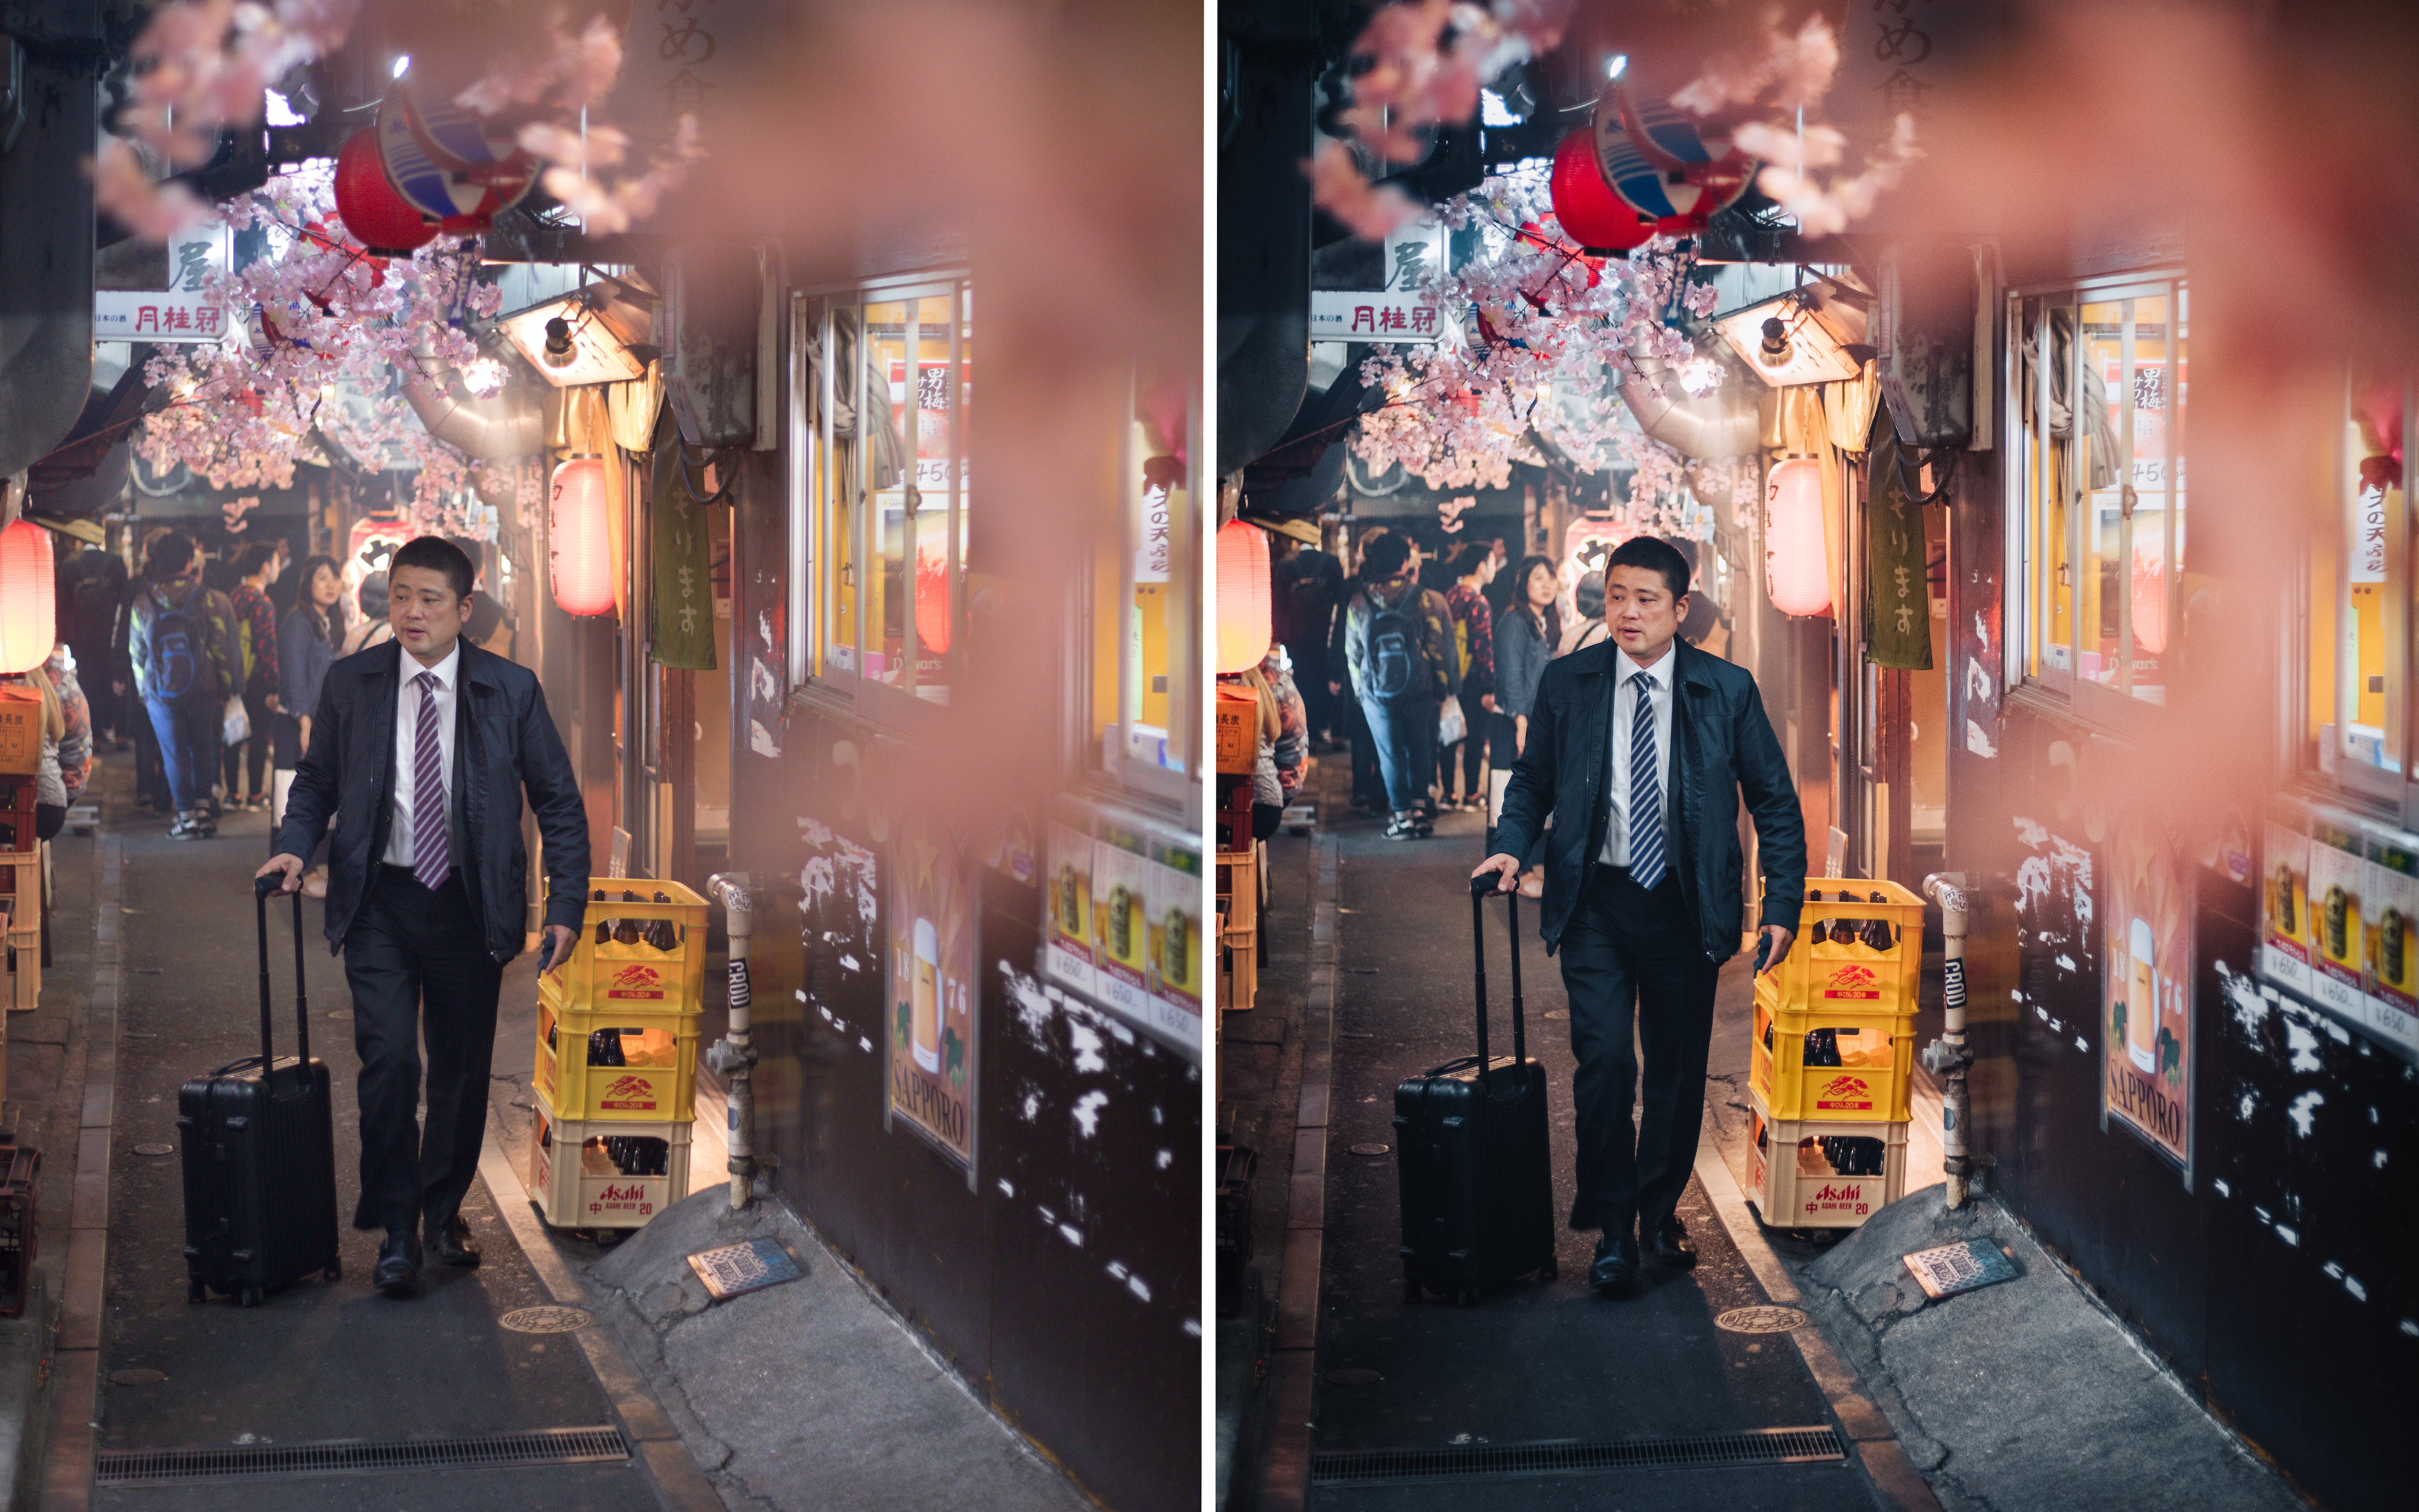 Before and after of @jordhammond Lightroom Urban Preset - Man walking through alleyway at night surrounded by cherry blossoms in Tokyo, Japan.